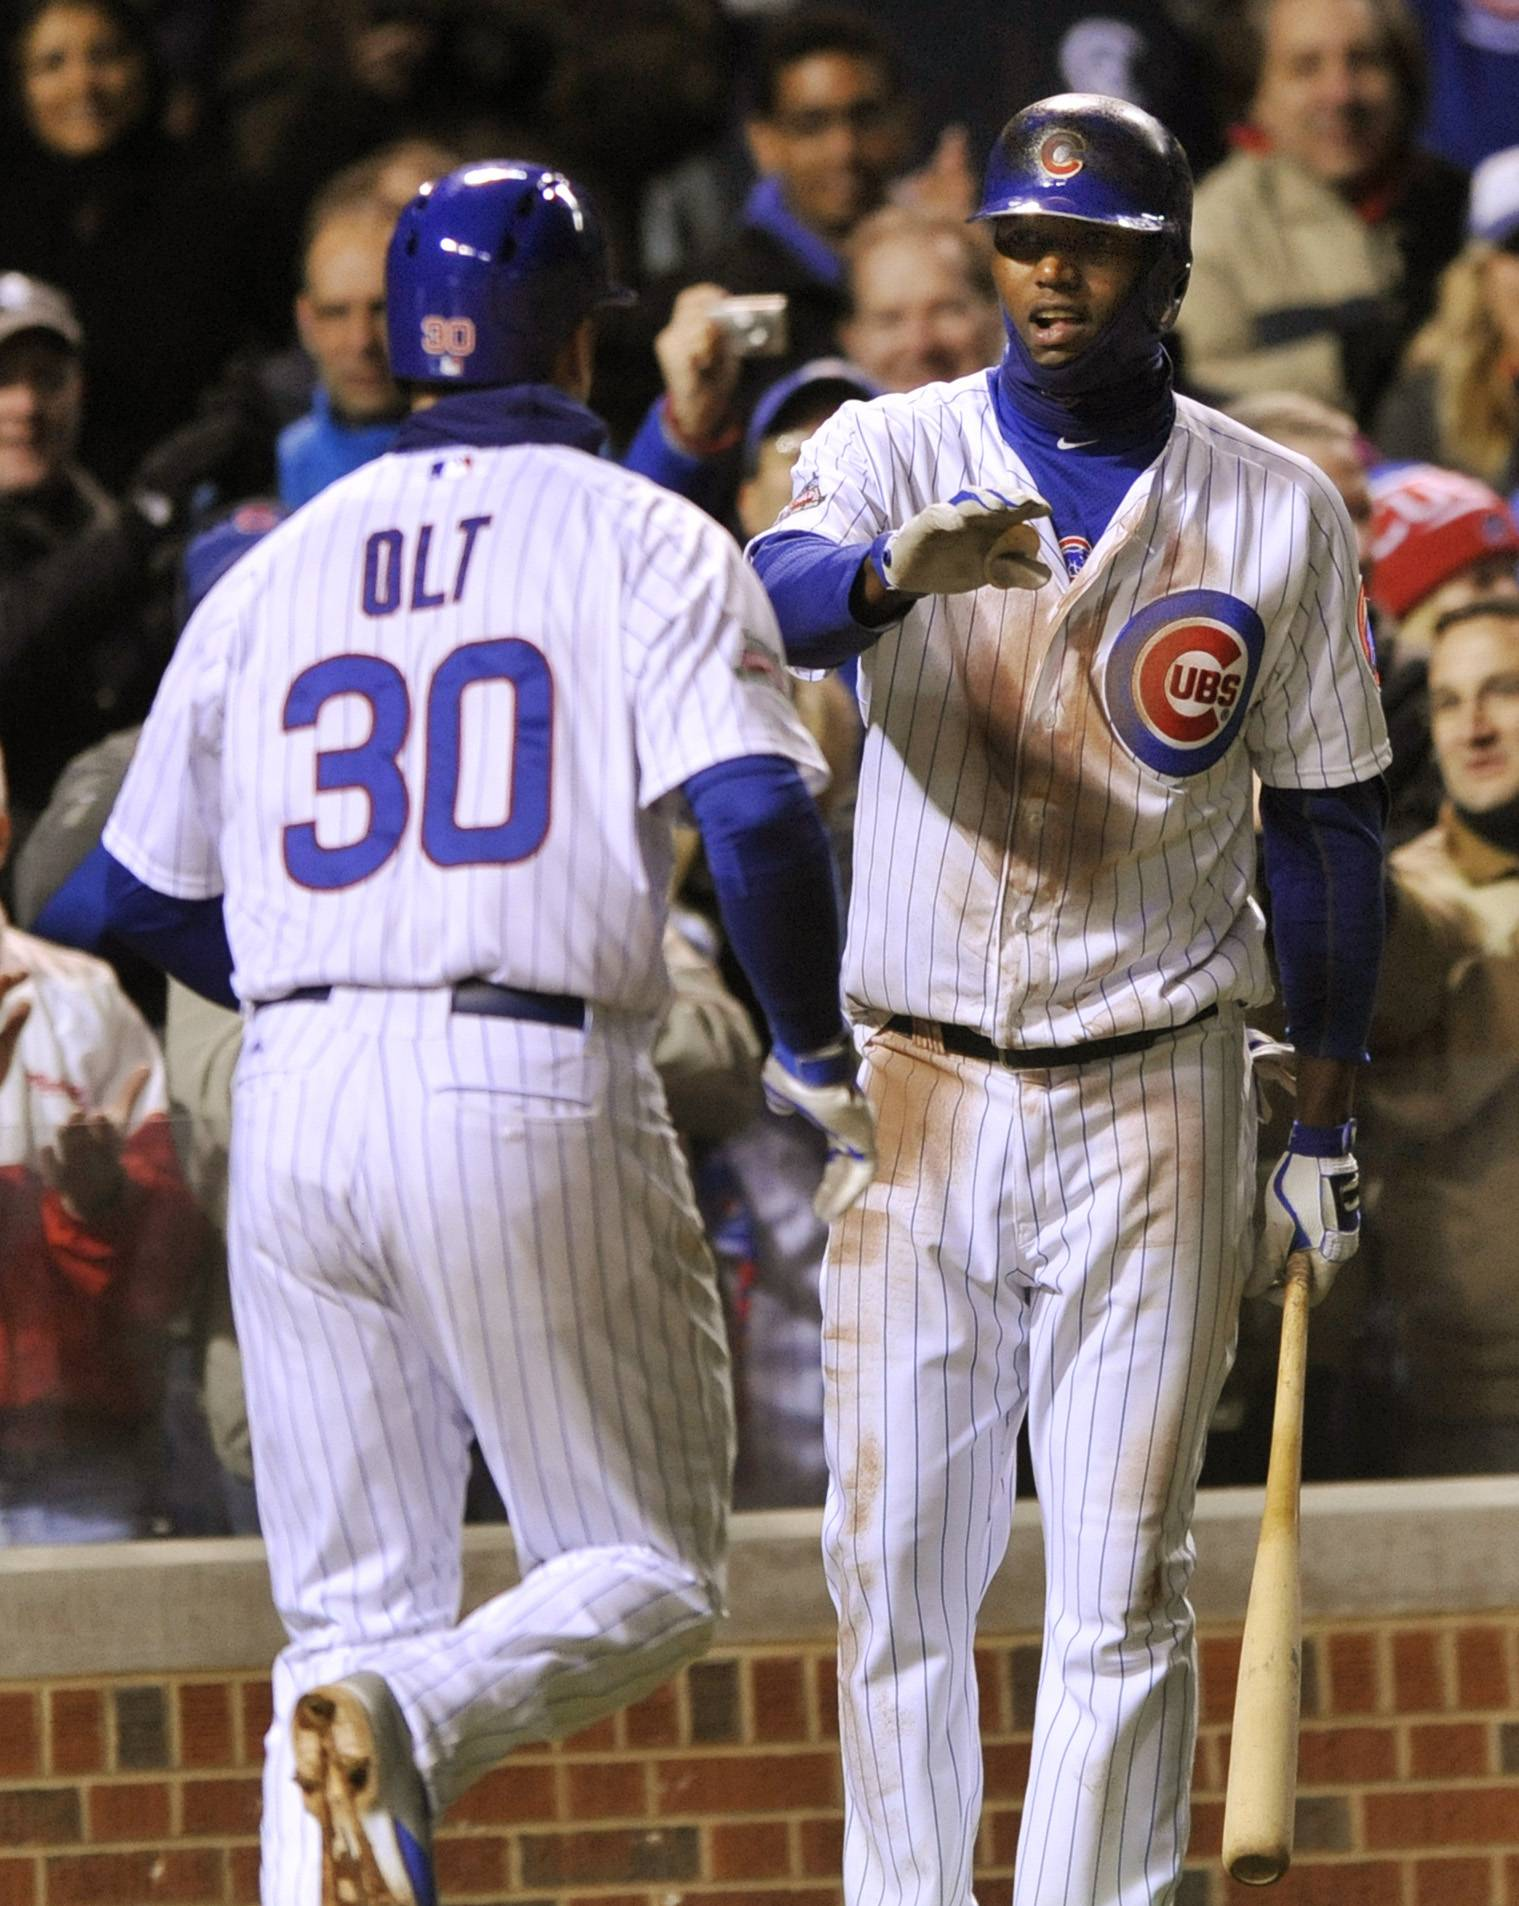 The Cubs' Junior Lake, right, greets Mike Olt after Olt hit a 3-run homer in the fifth inning Tuesday at Wrigley Field.